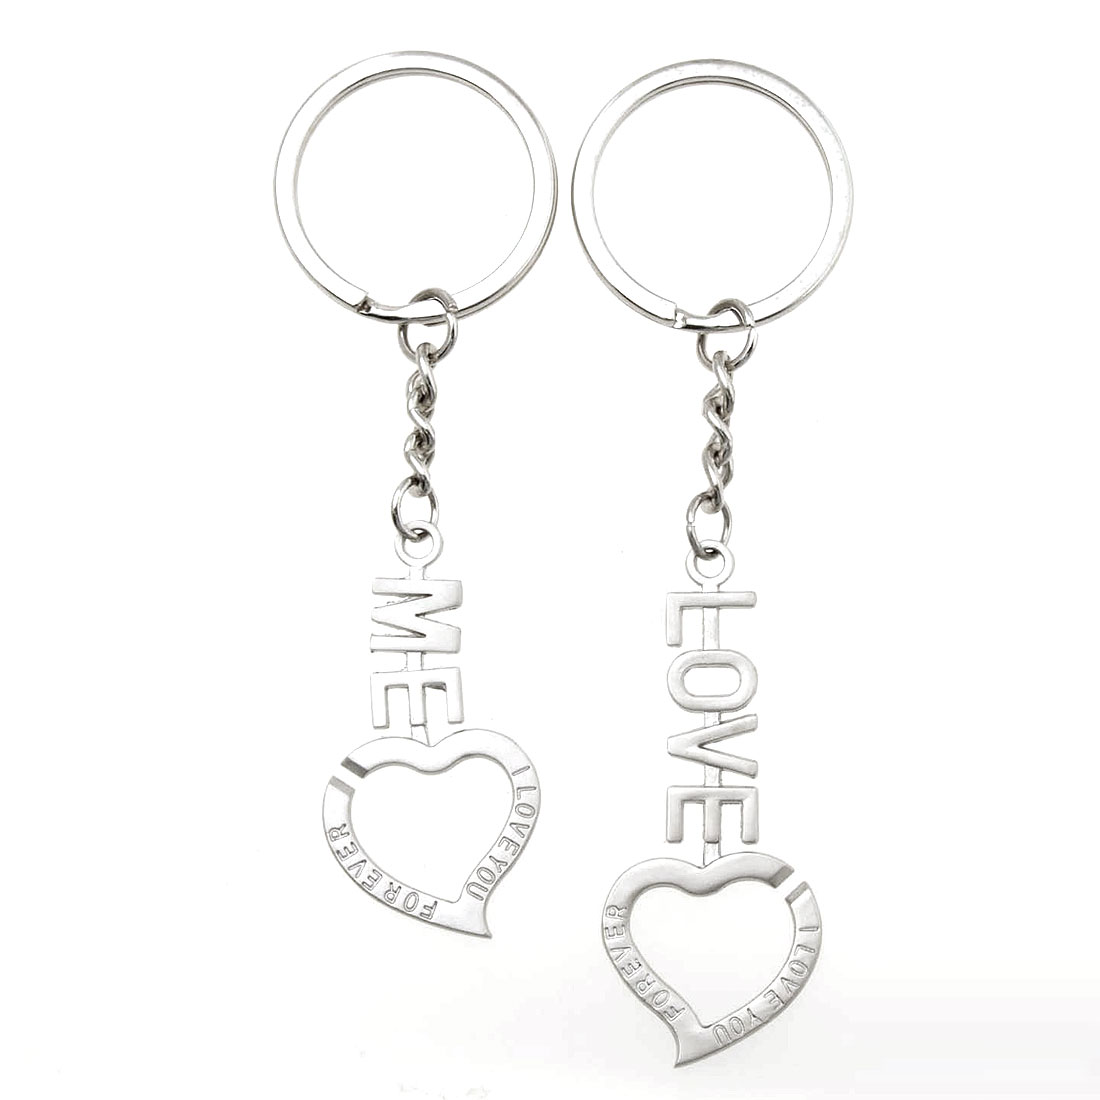 Couple Love Key Chain with Heart Pendant